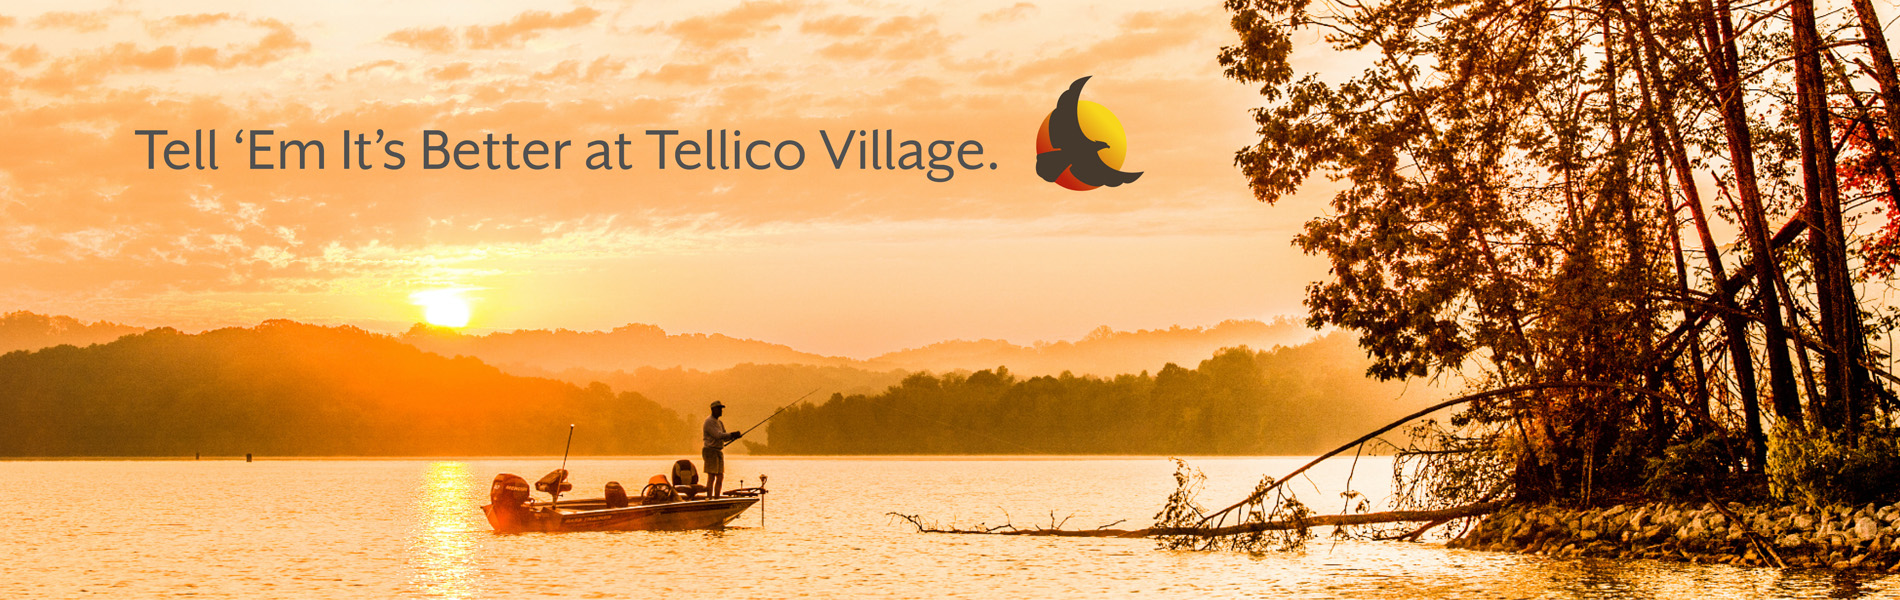 Welcome to Tellico Village - A Waterfront Retirement Community in East Tennessee.